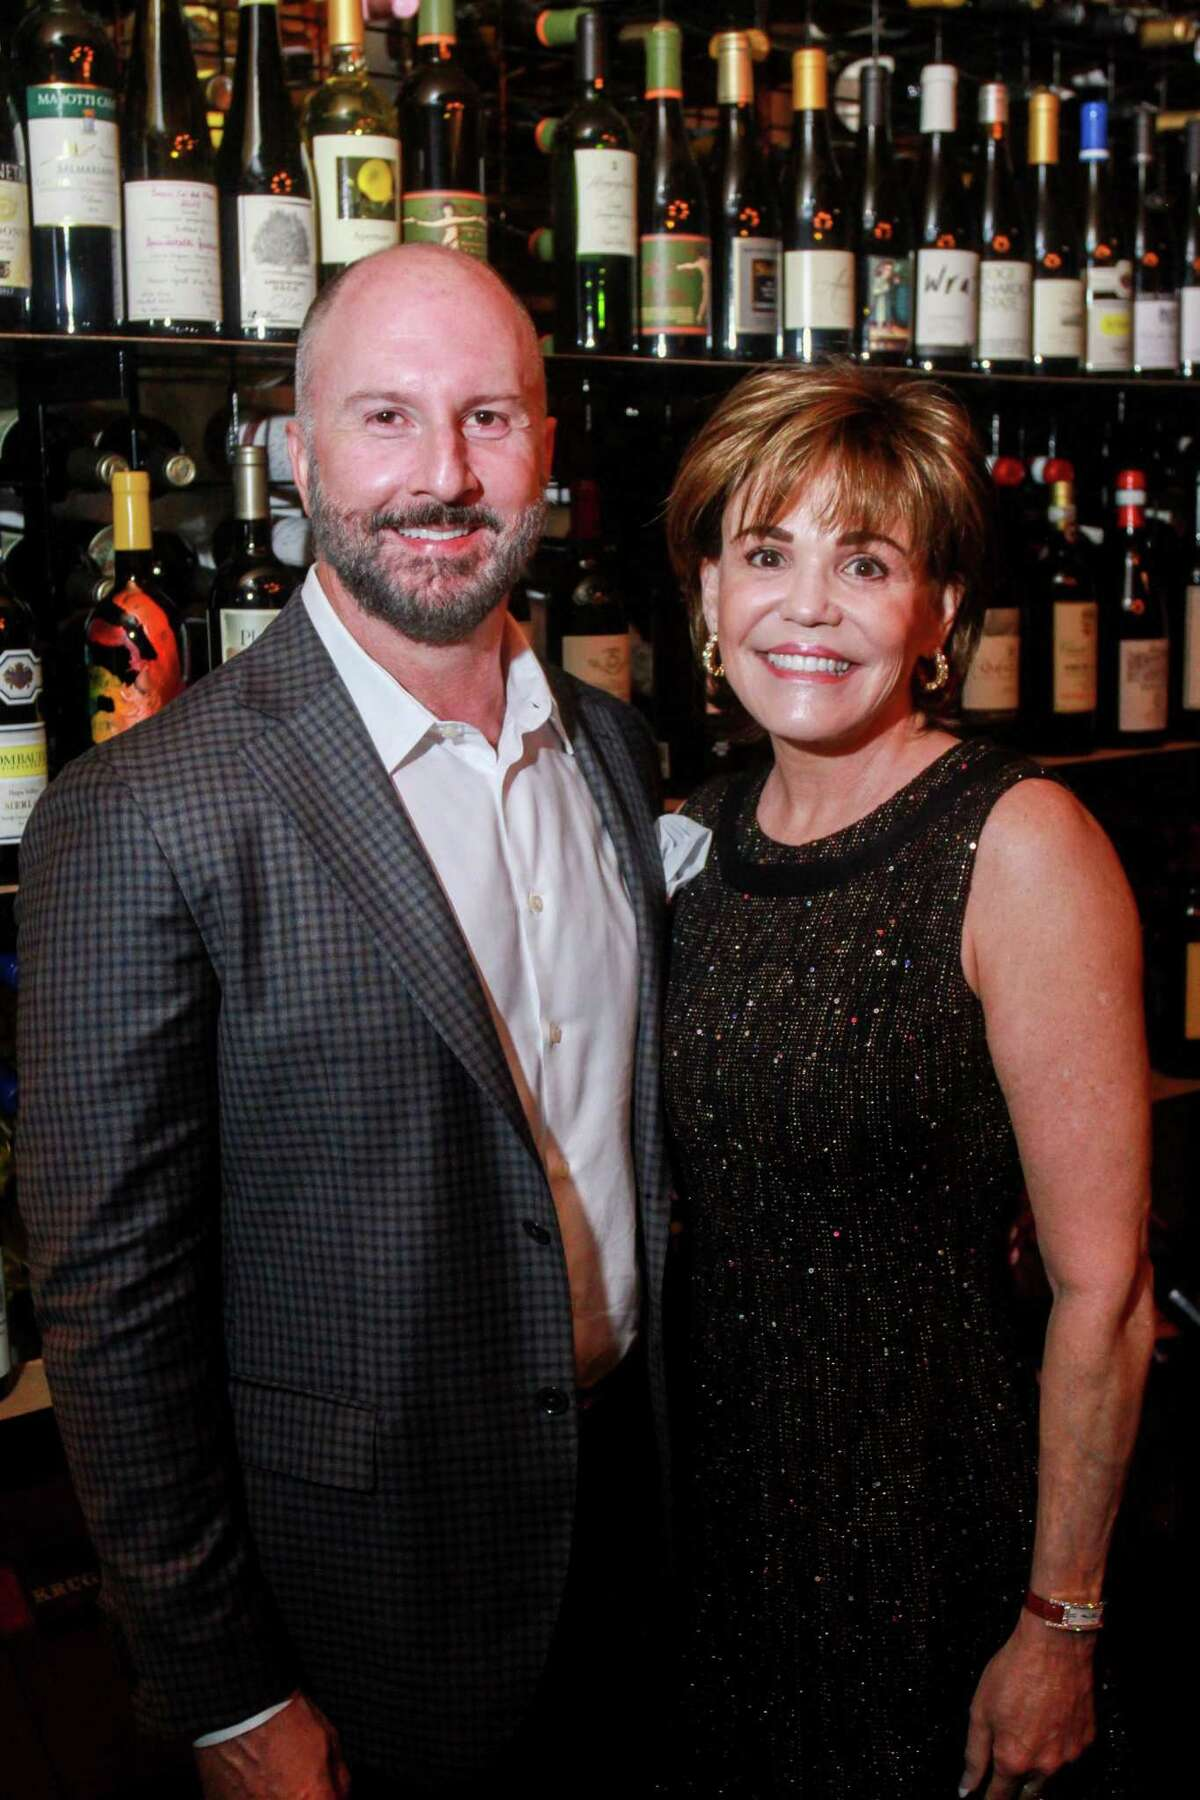 Honoree Tony Bradfield and Hallie Vanderhider at AVDA's Home Safe Home Gala in Houston on October 14, 2020.